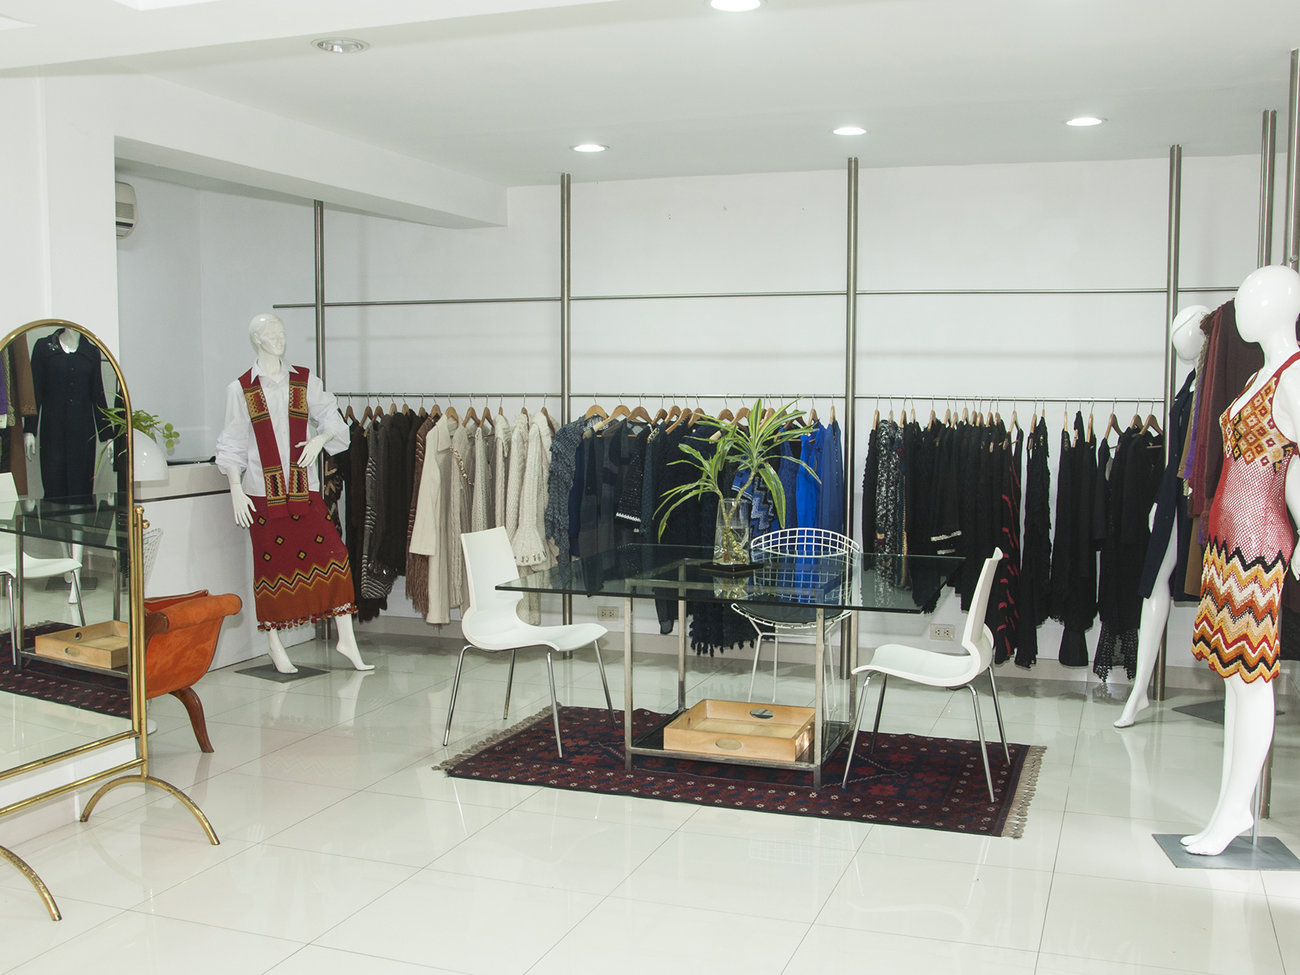 Giuliana Testino Clothing Store in Lima